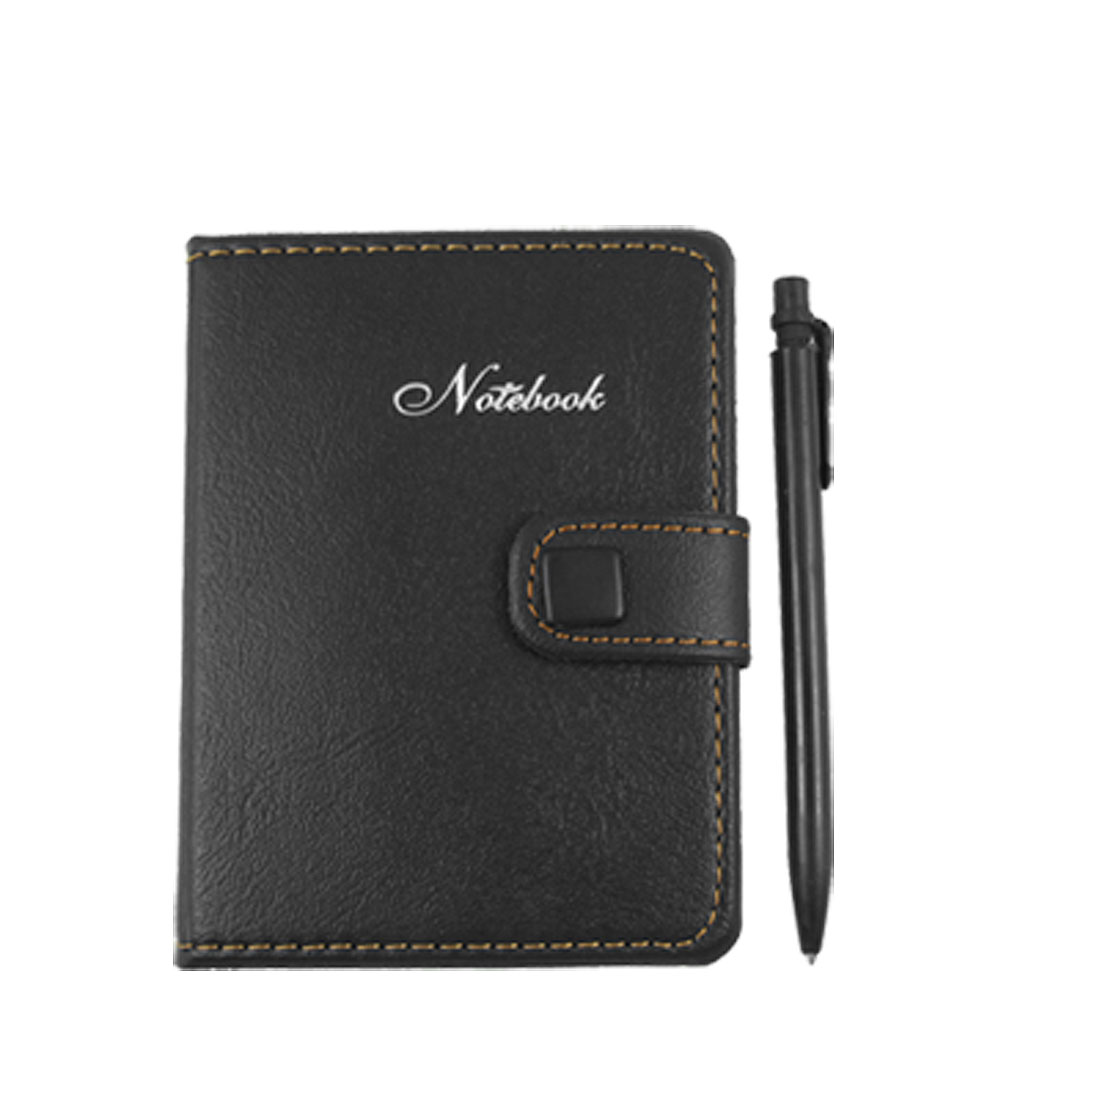 Faux Leather Cover Memo Writing Notebook With Pen Black